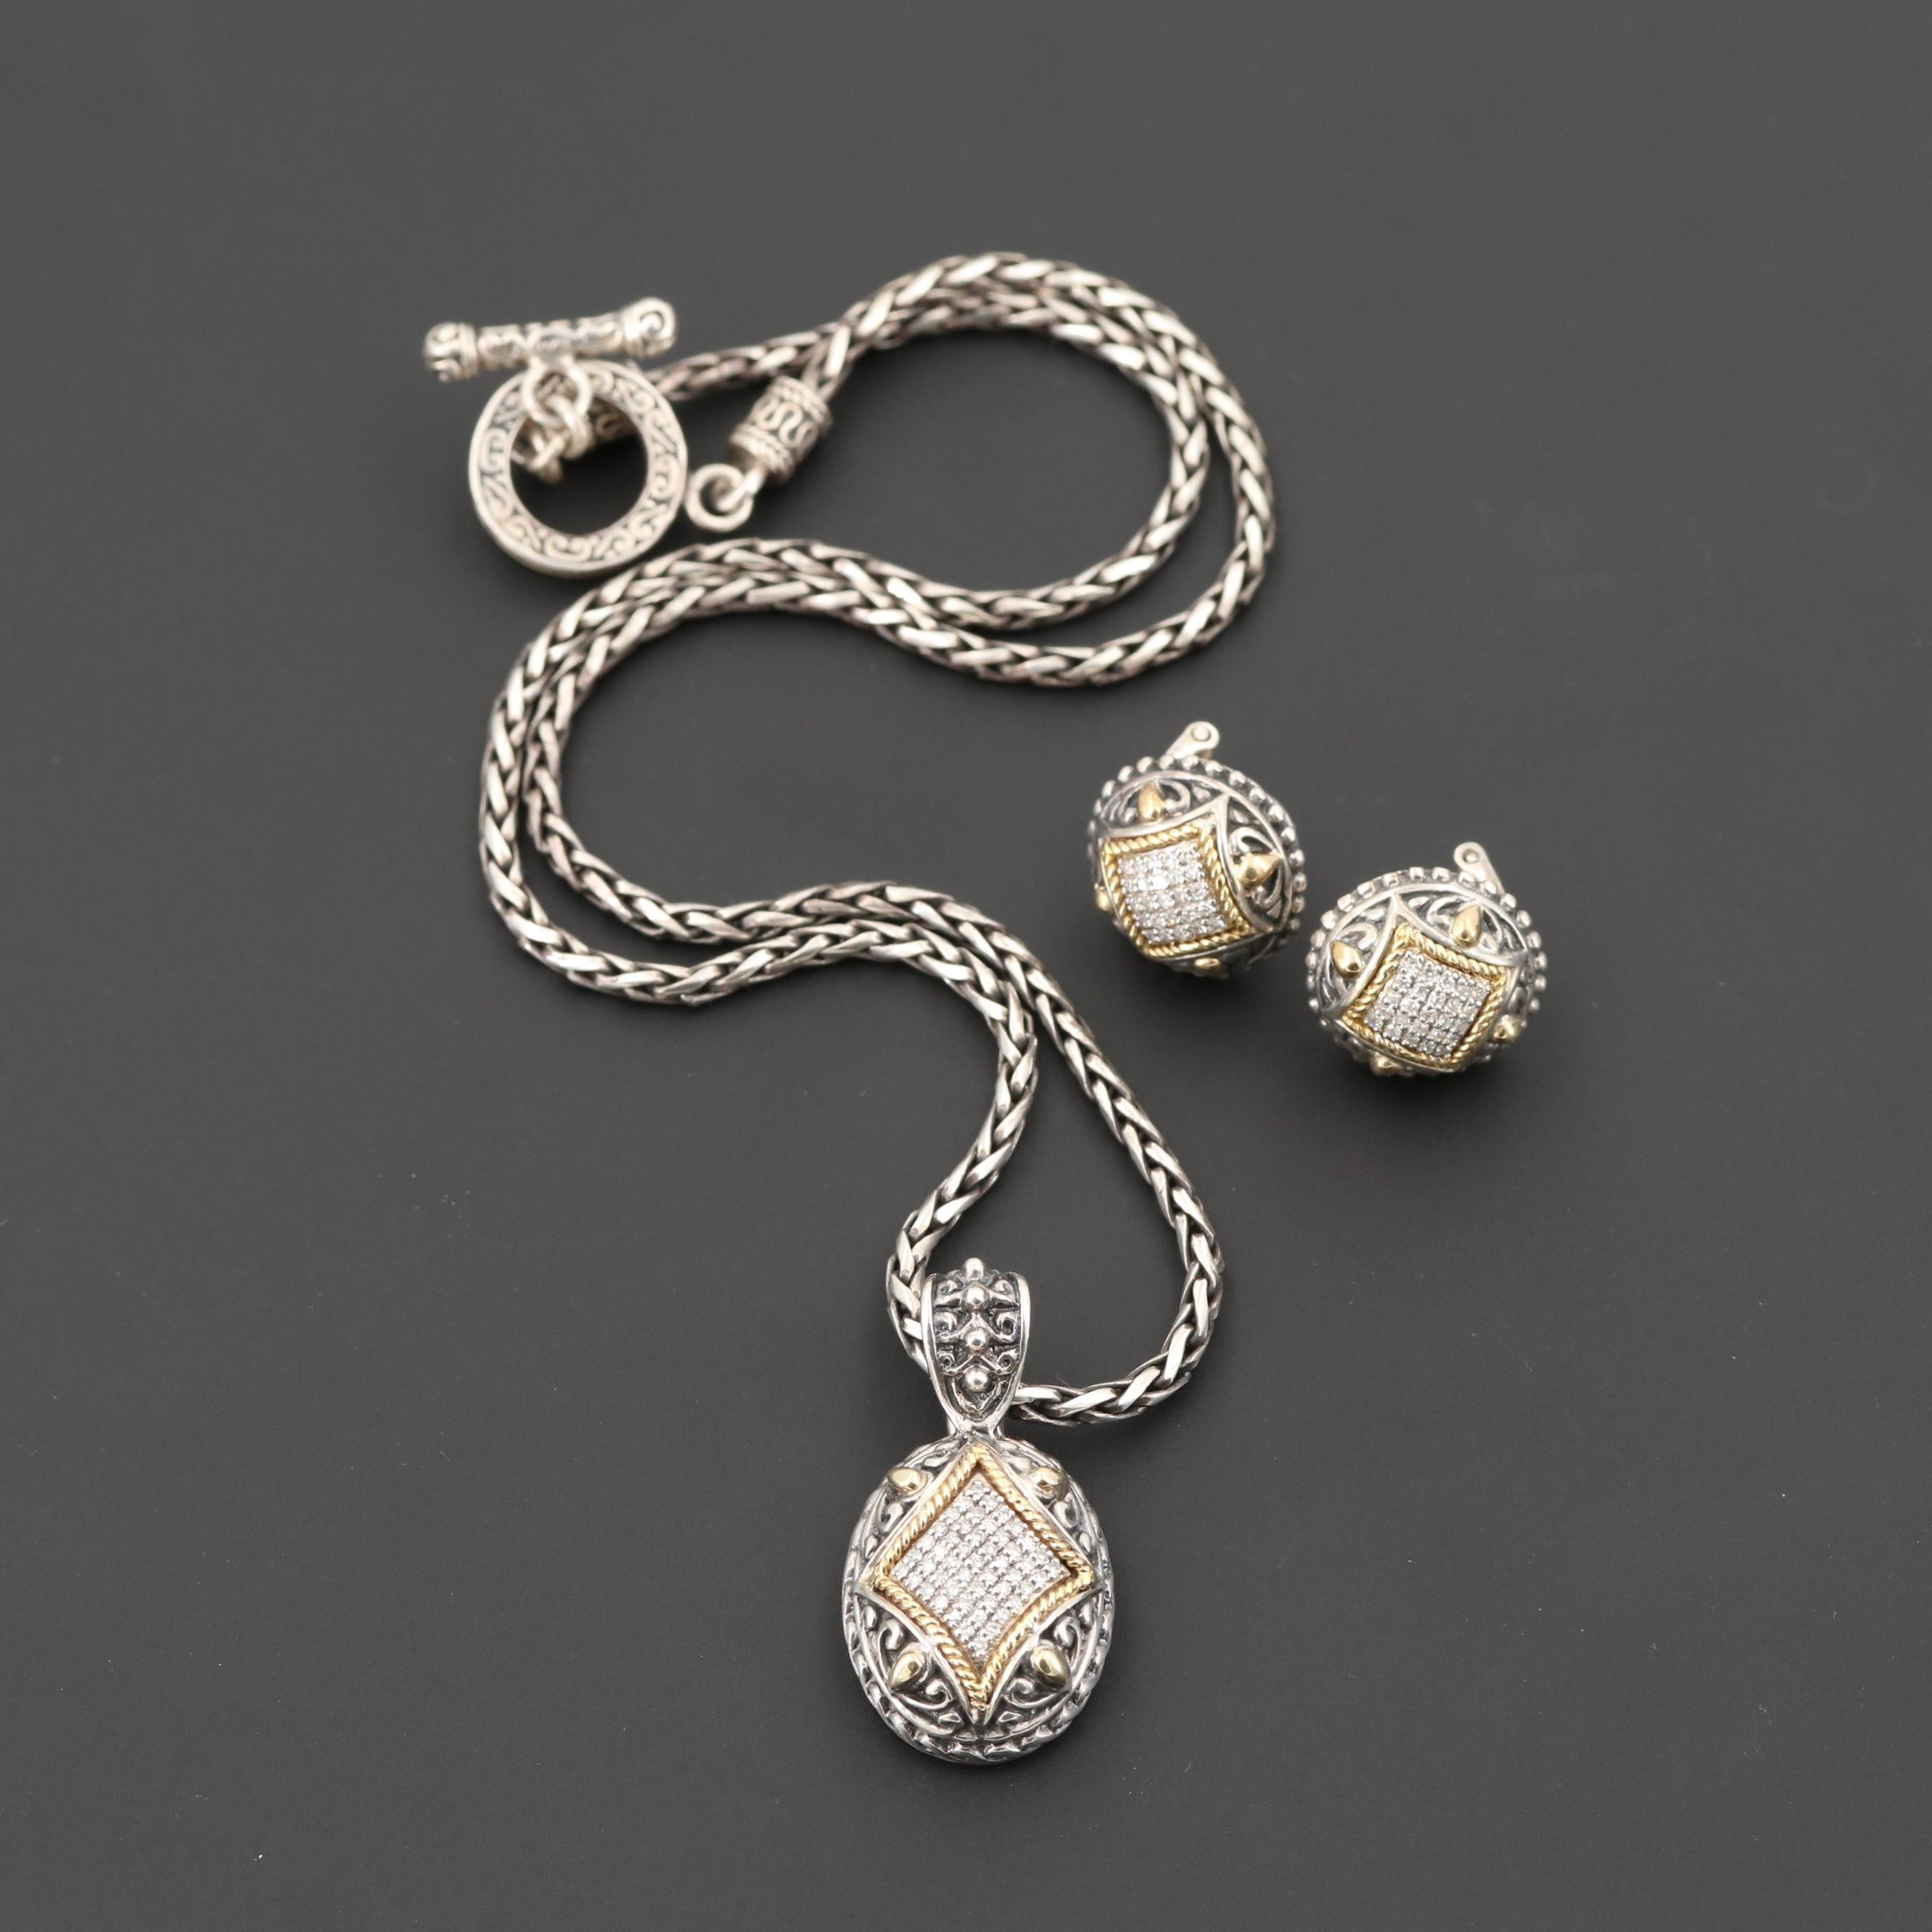 Effy Sterling Silver Diamond Necklace and Earring Set with 18K Gold Accents